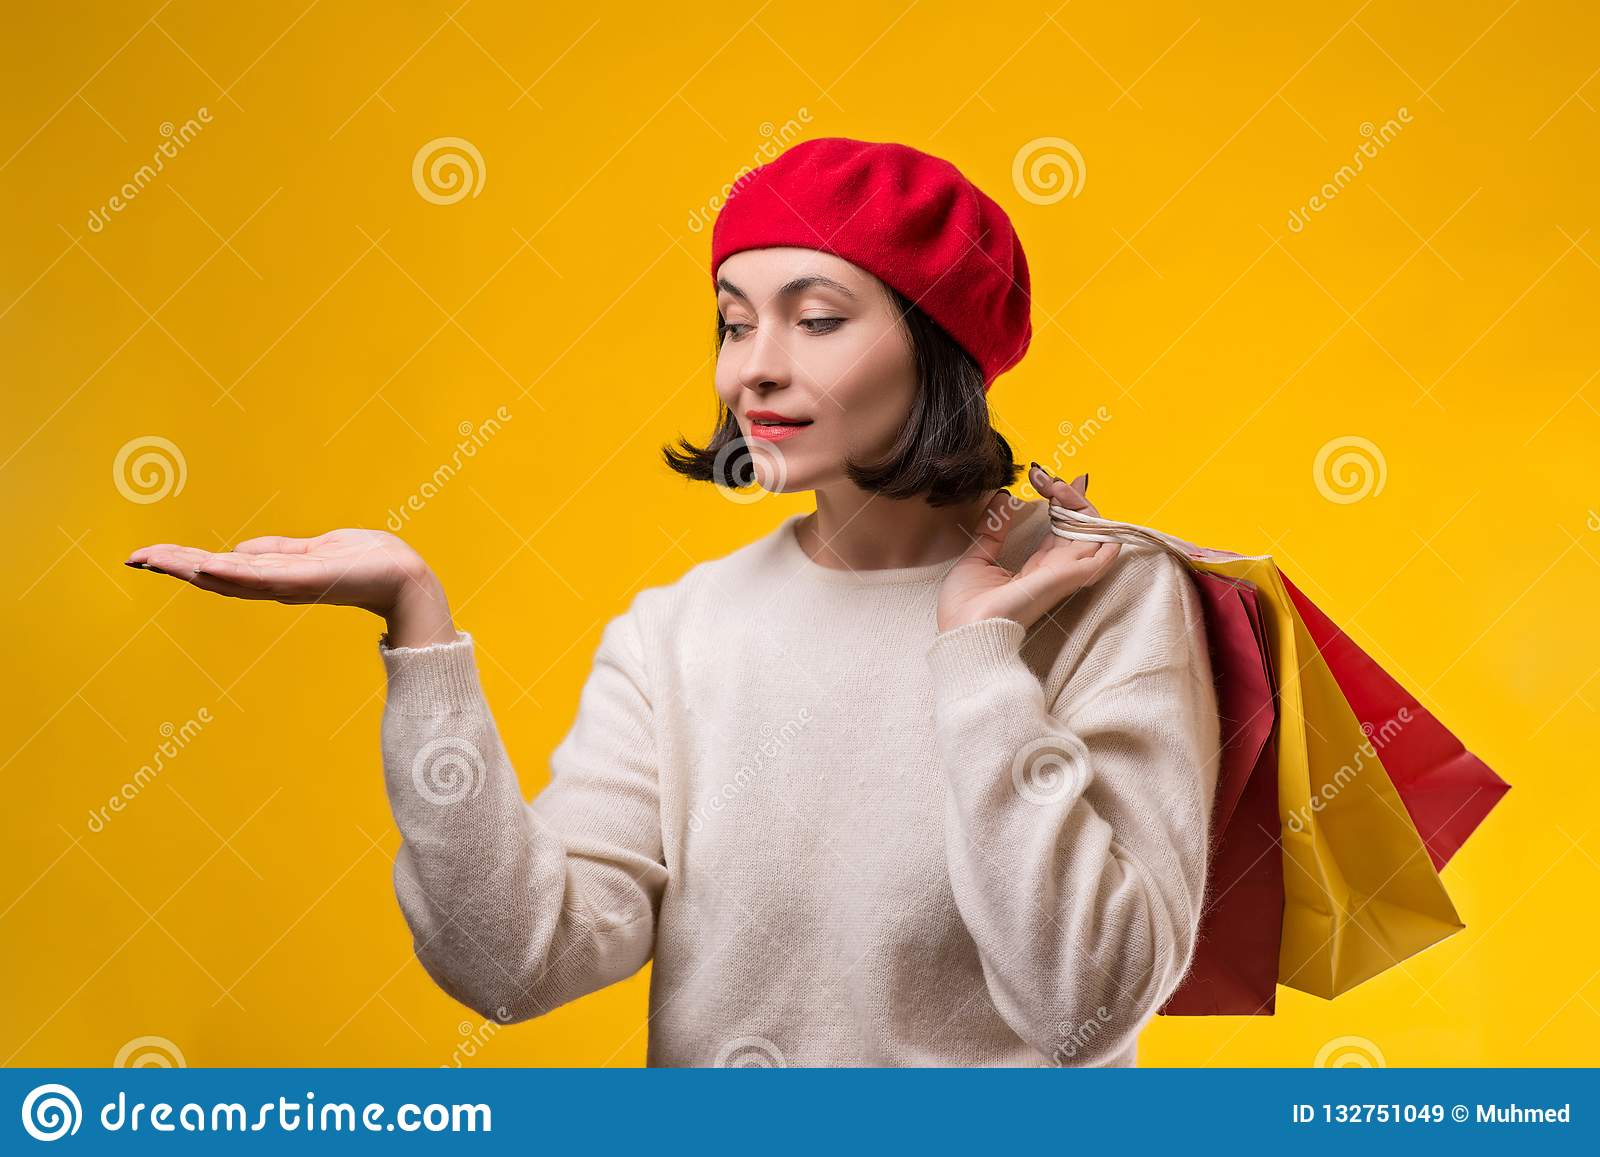 Shopping woman showing something with open hand palm. Happy girl holding shopping bags. Fashion woman shopper isolated on yellow